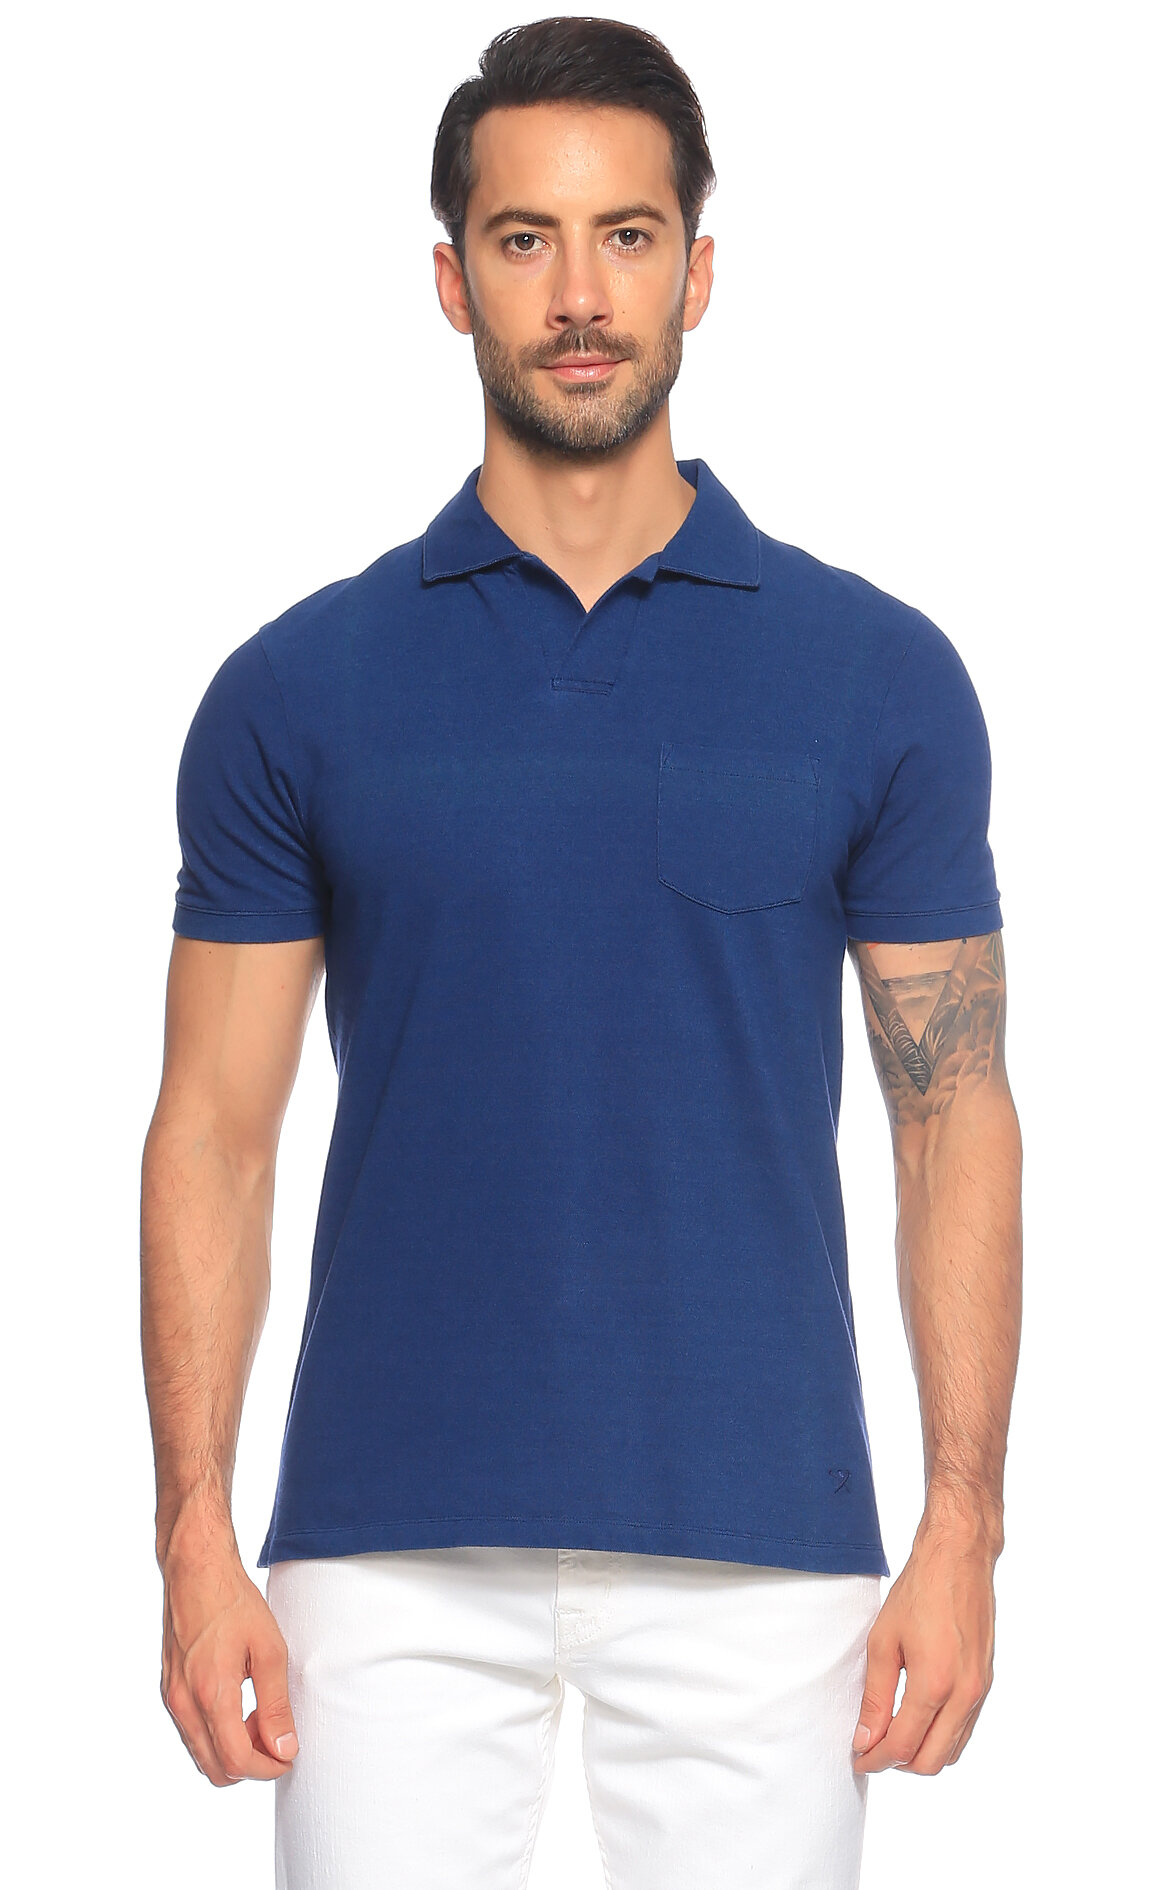 Hackett-Hackett Mavi Polo T-Shirt